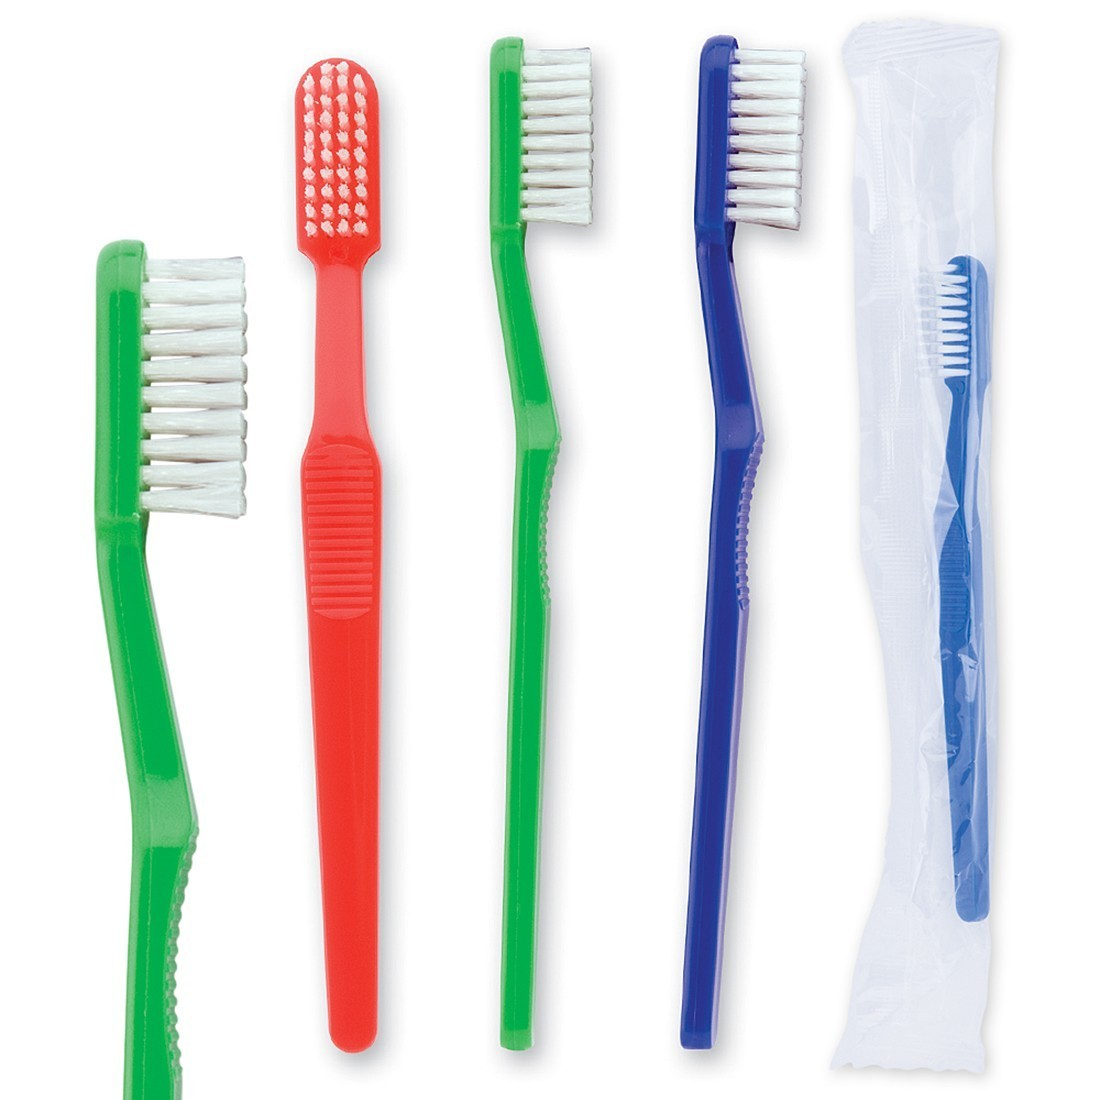 SmileCare Adult Standard Toothbrushes [image]